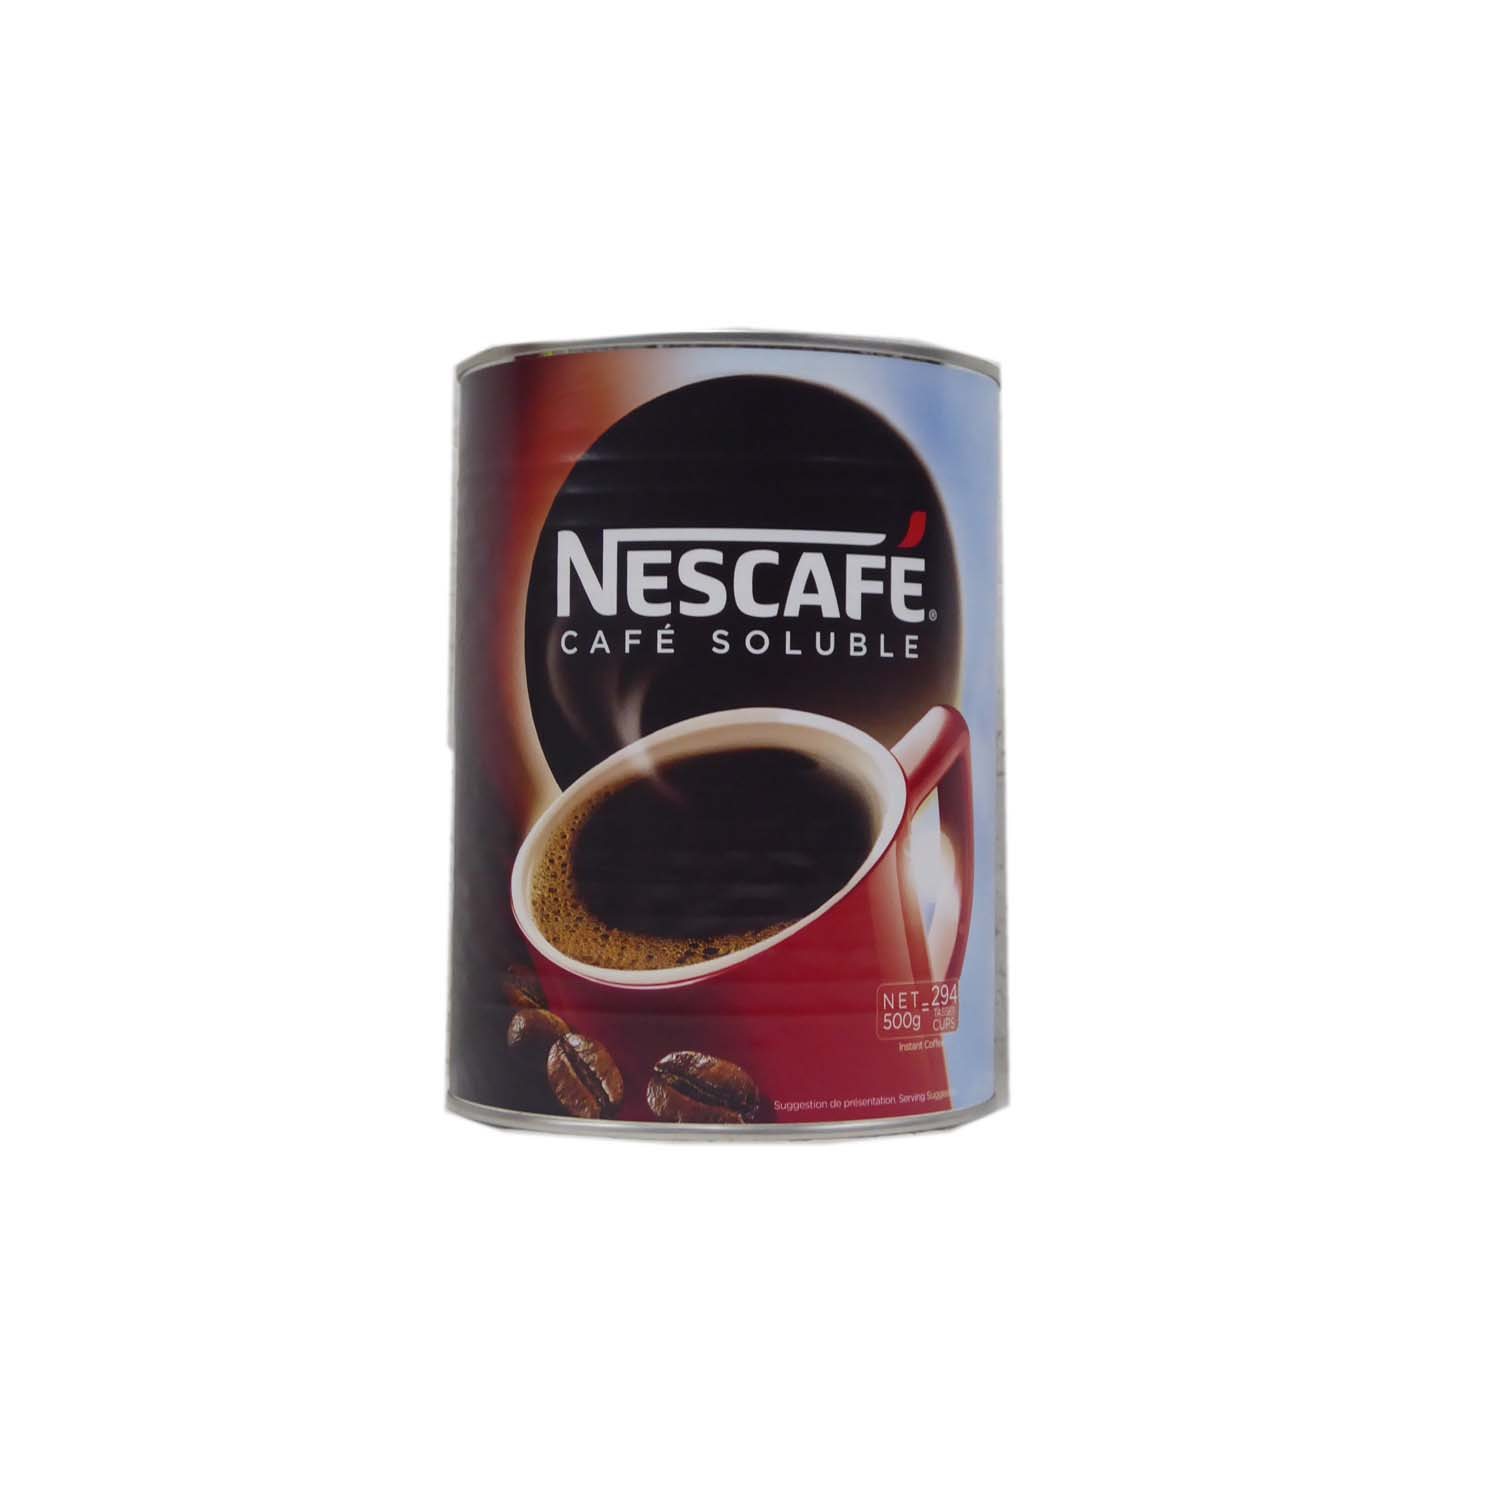 Nescafe Classic Coffee - Jar 500g